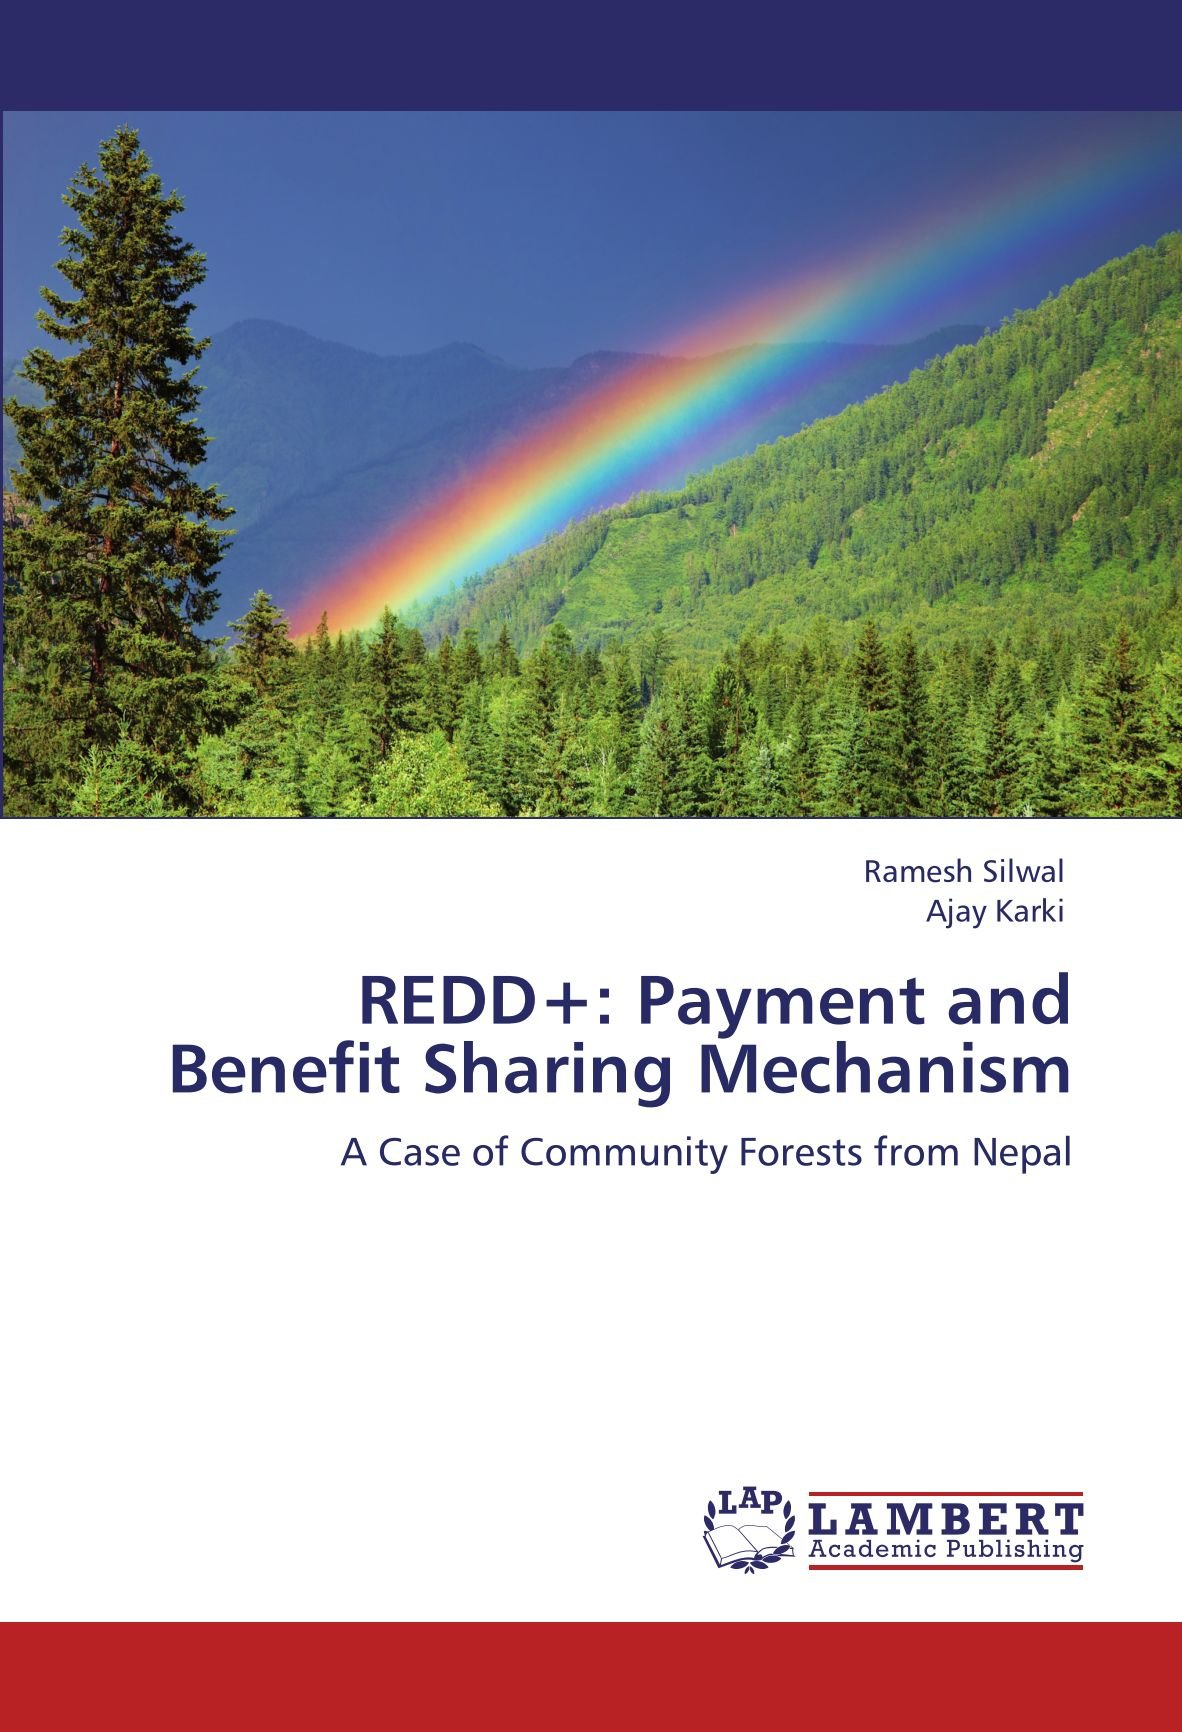 REDD+: Payment and Benefit Sharing Mechanism: A Case of Community Forests from Nepal pdf